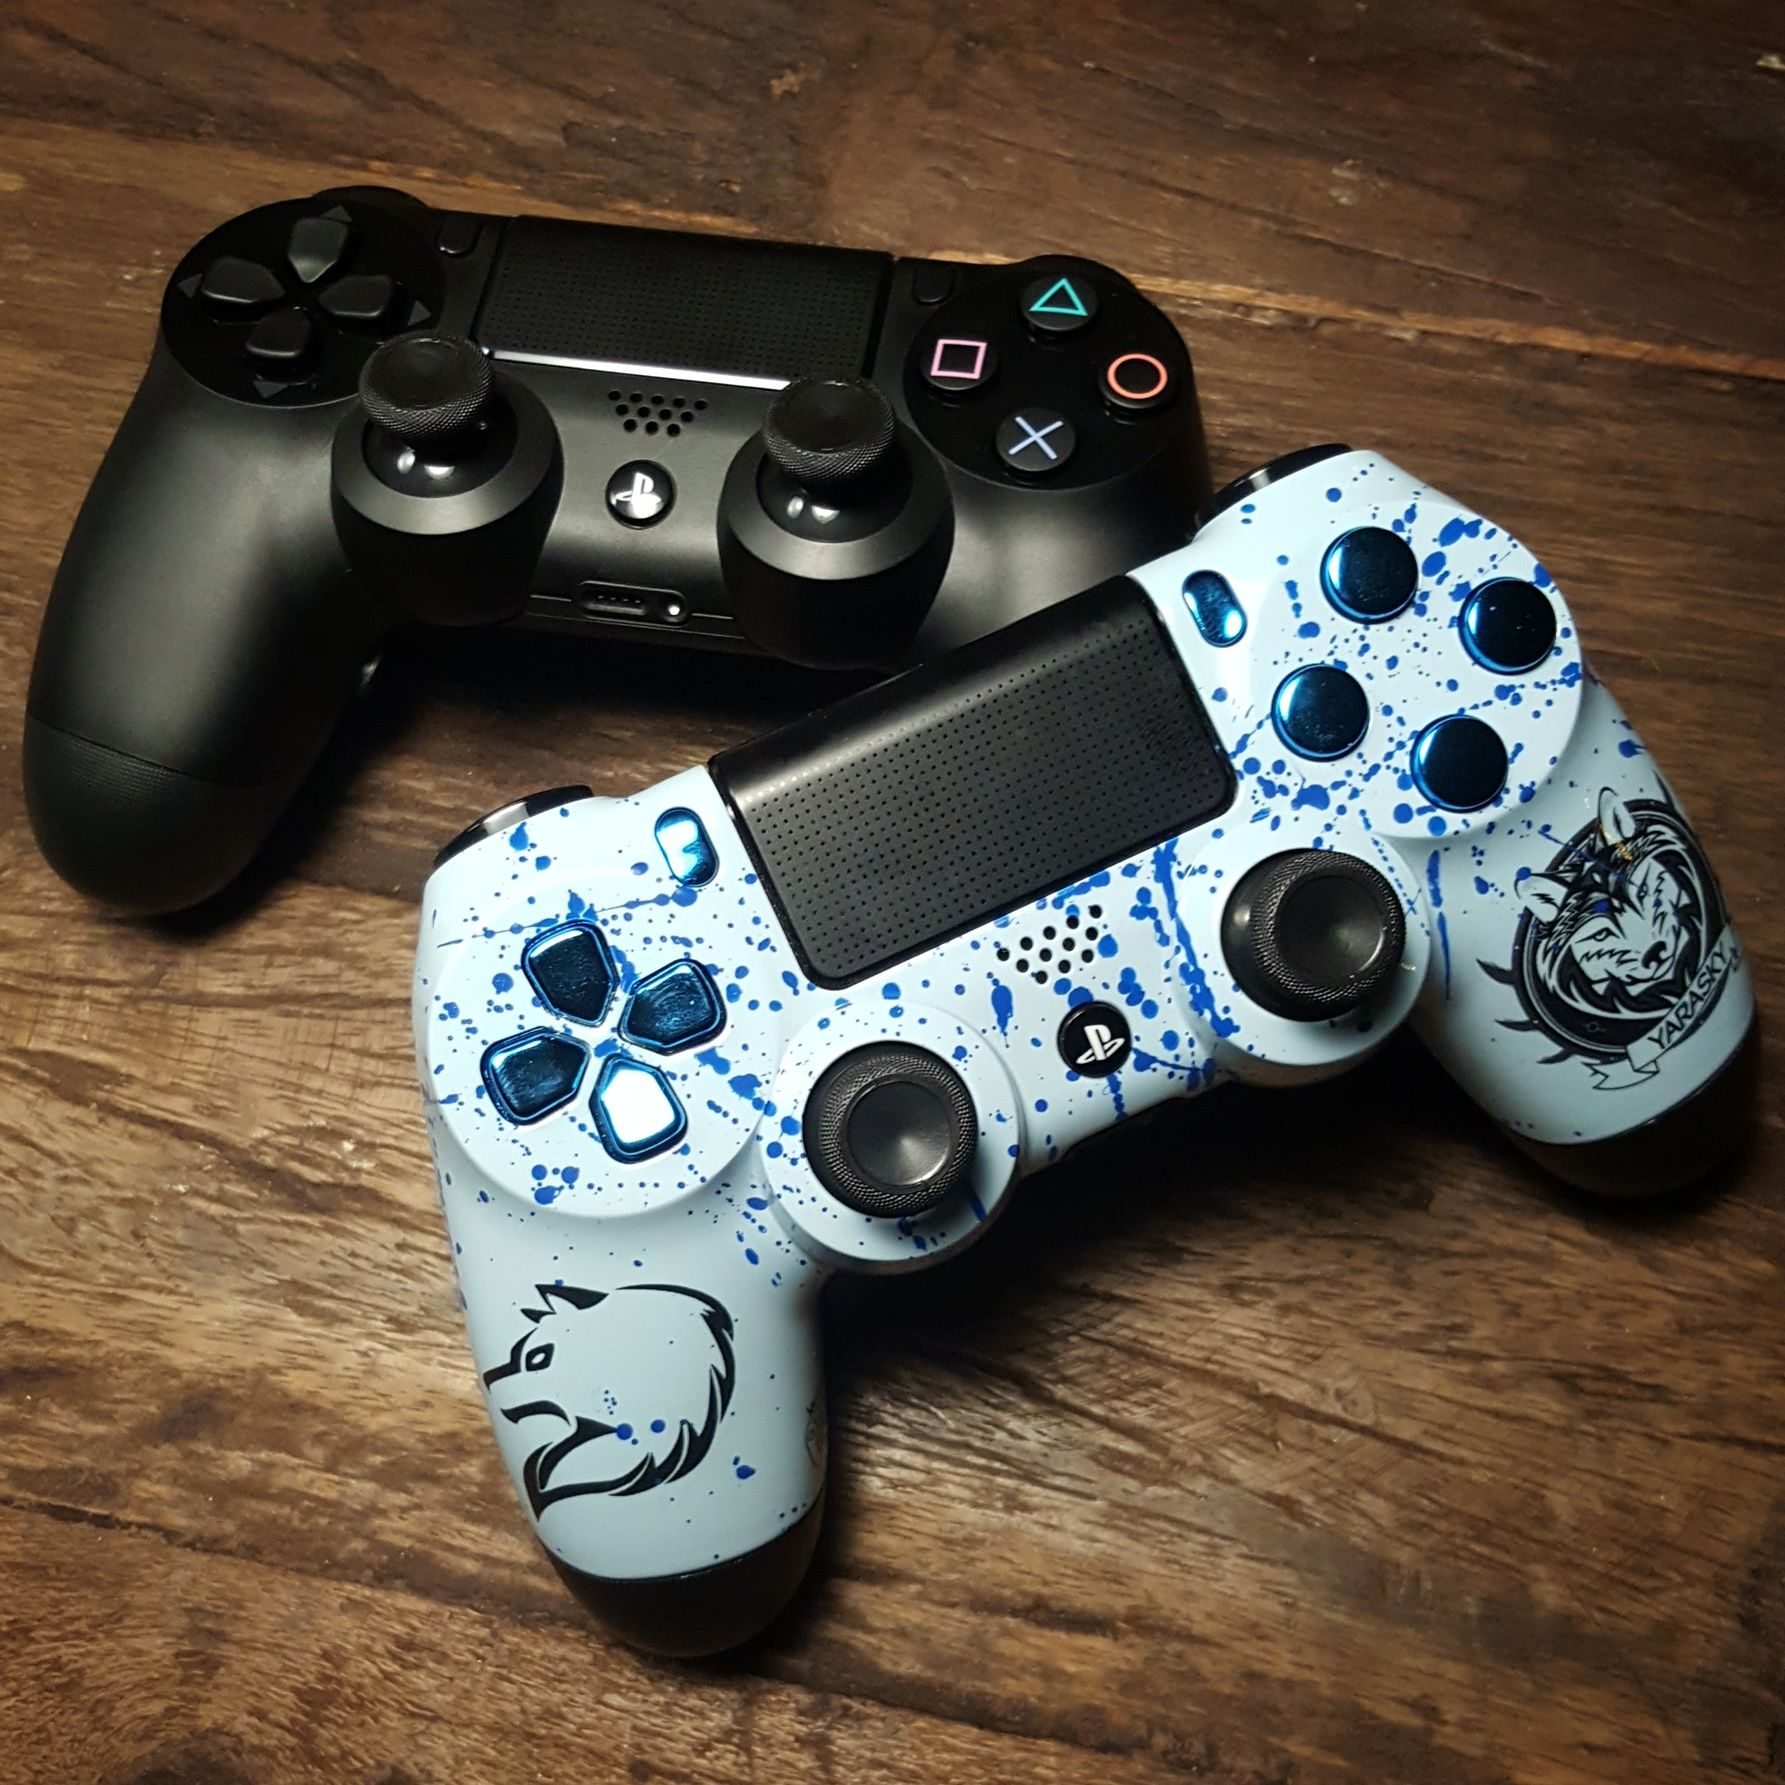 Ps4 Controller With Yarasky Design Blue Buttons Xbox One Sticks And Shock Paddles Ps4 Controller Custom Gaming Gear Playstation